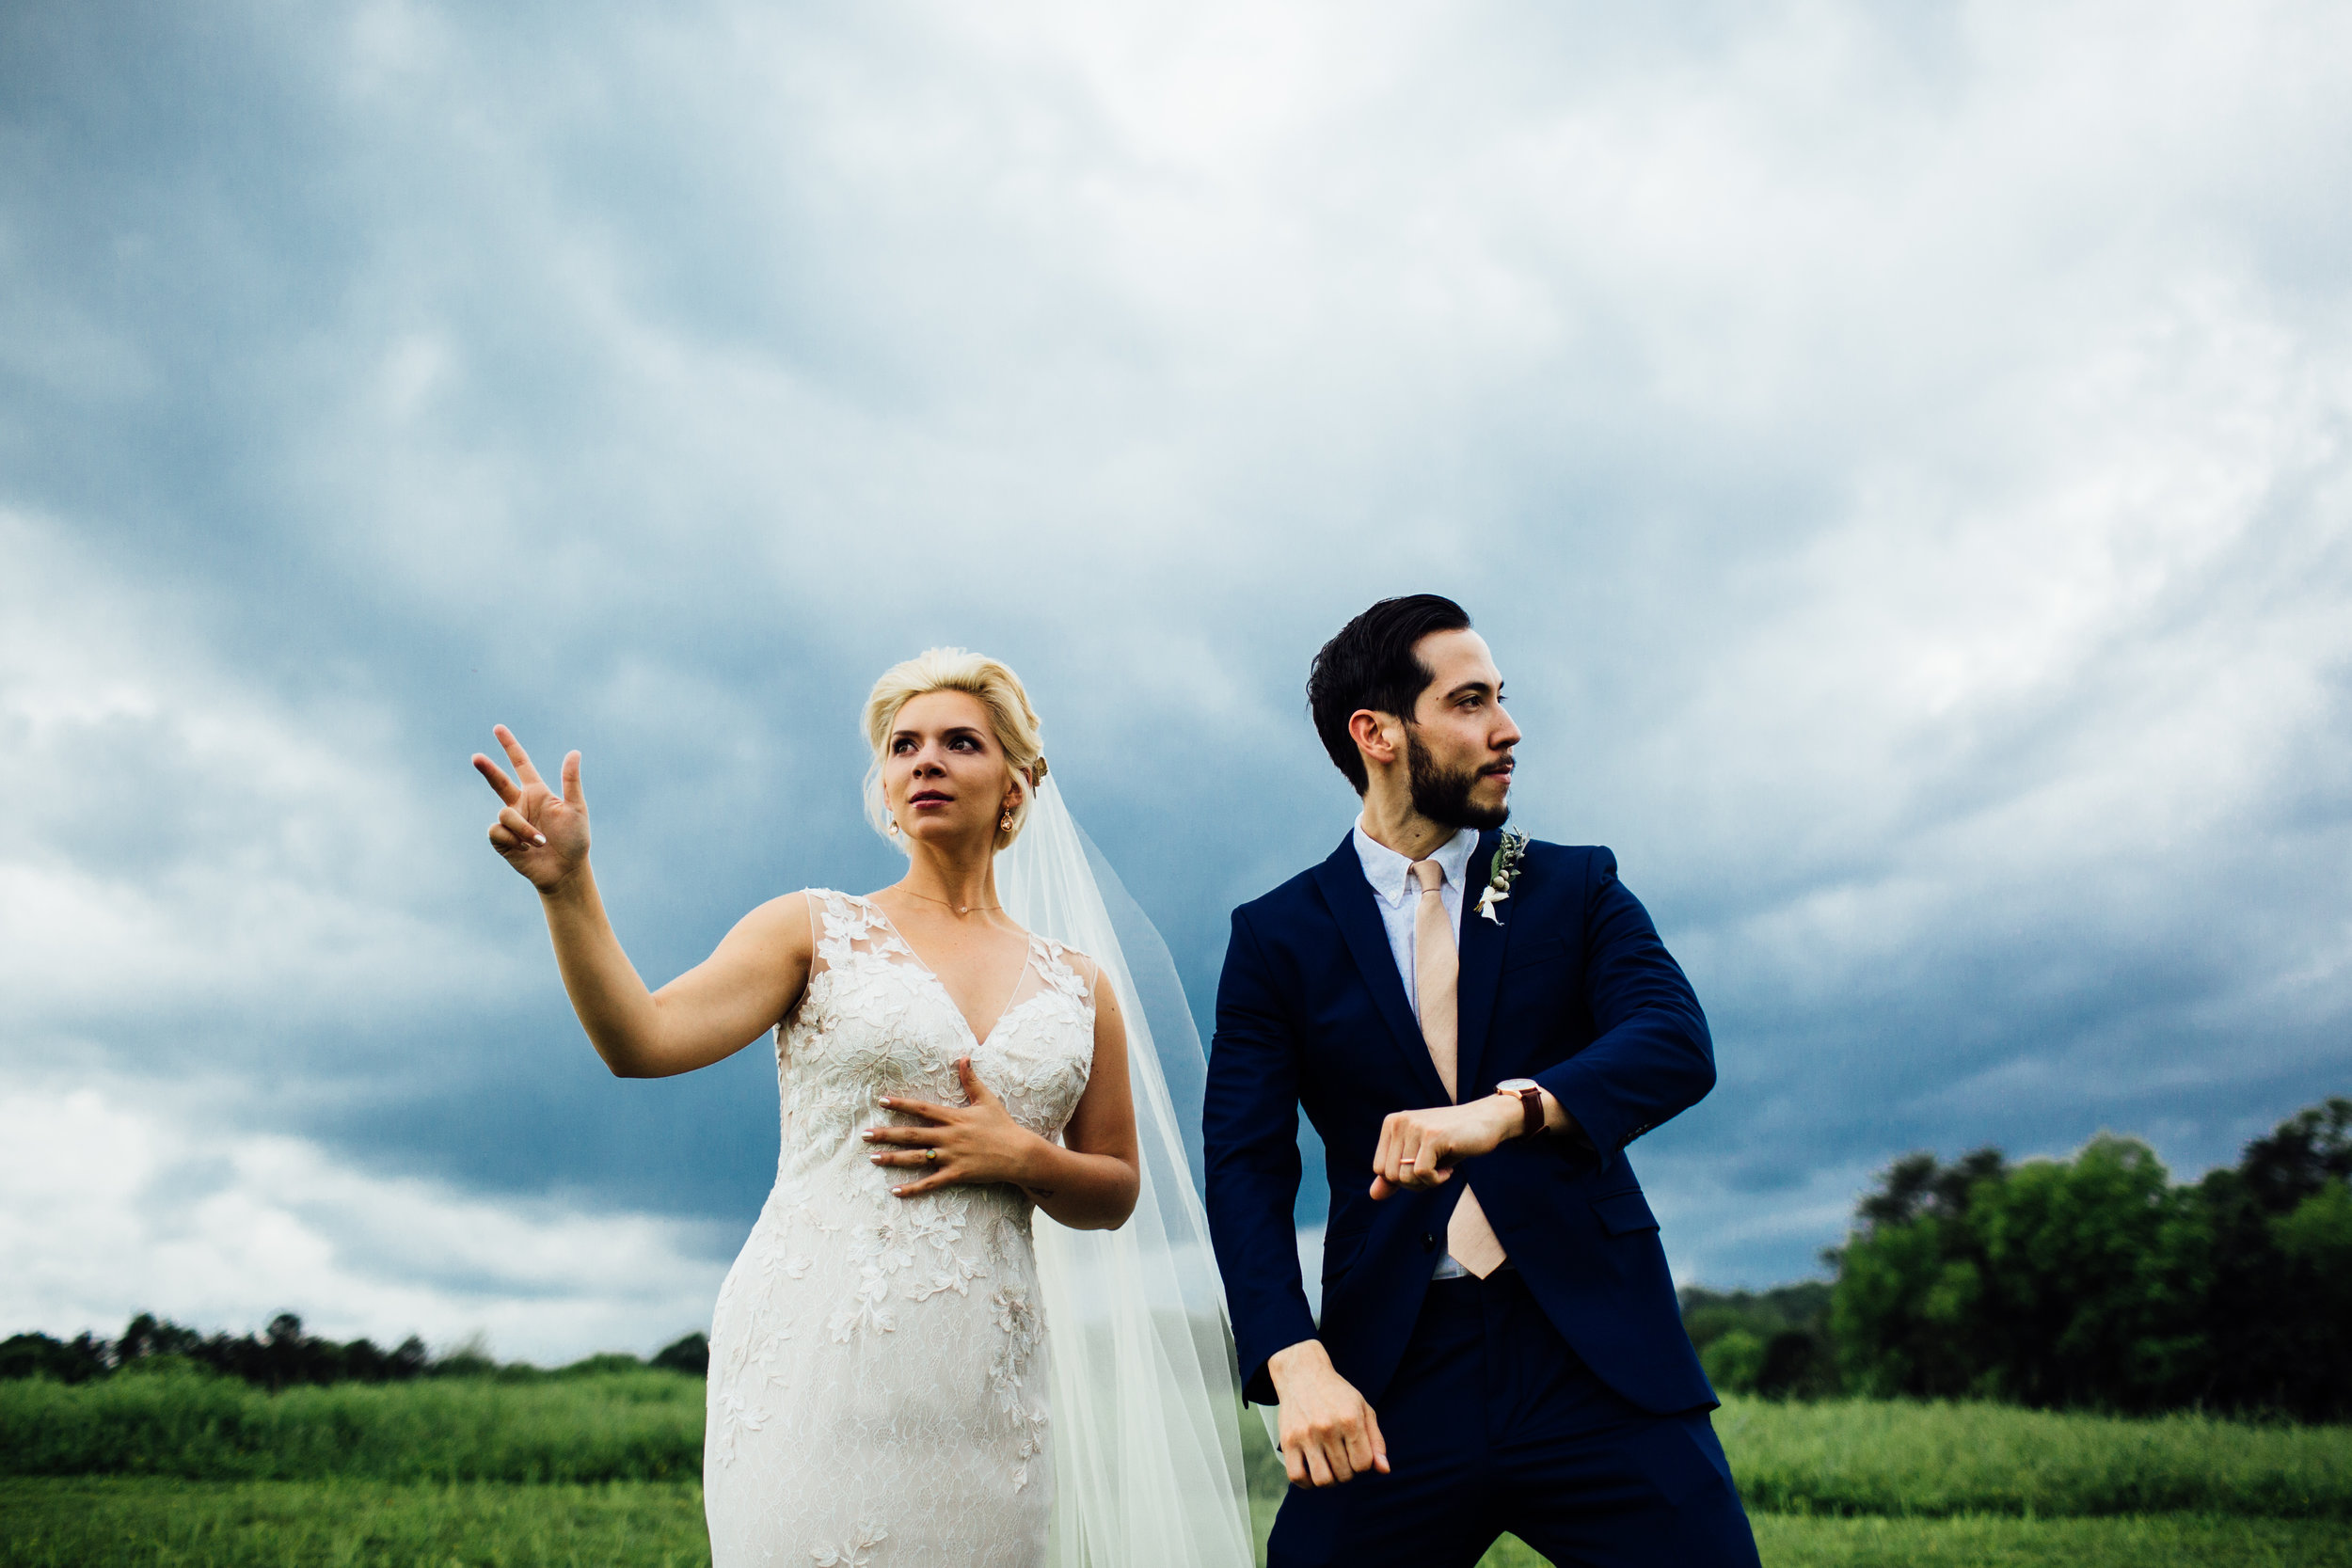 bride and groom fun dance moves stormy sky